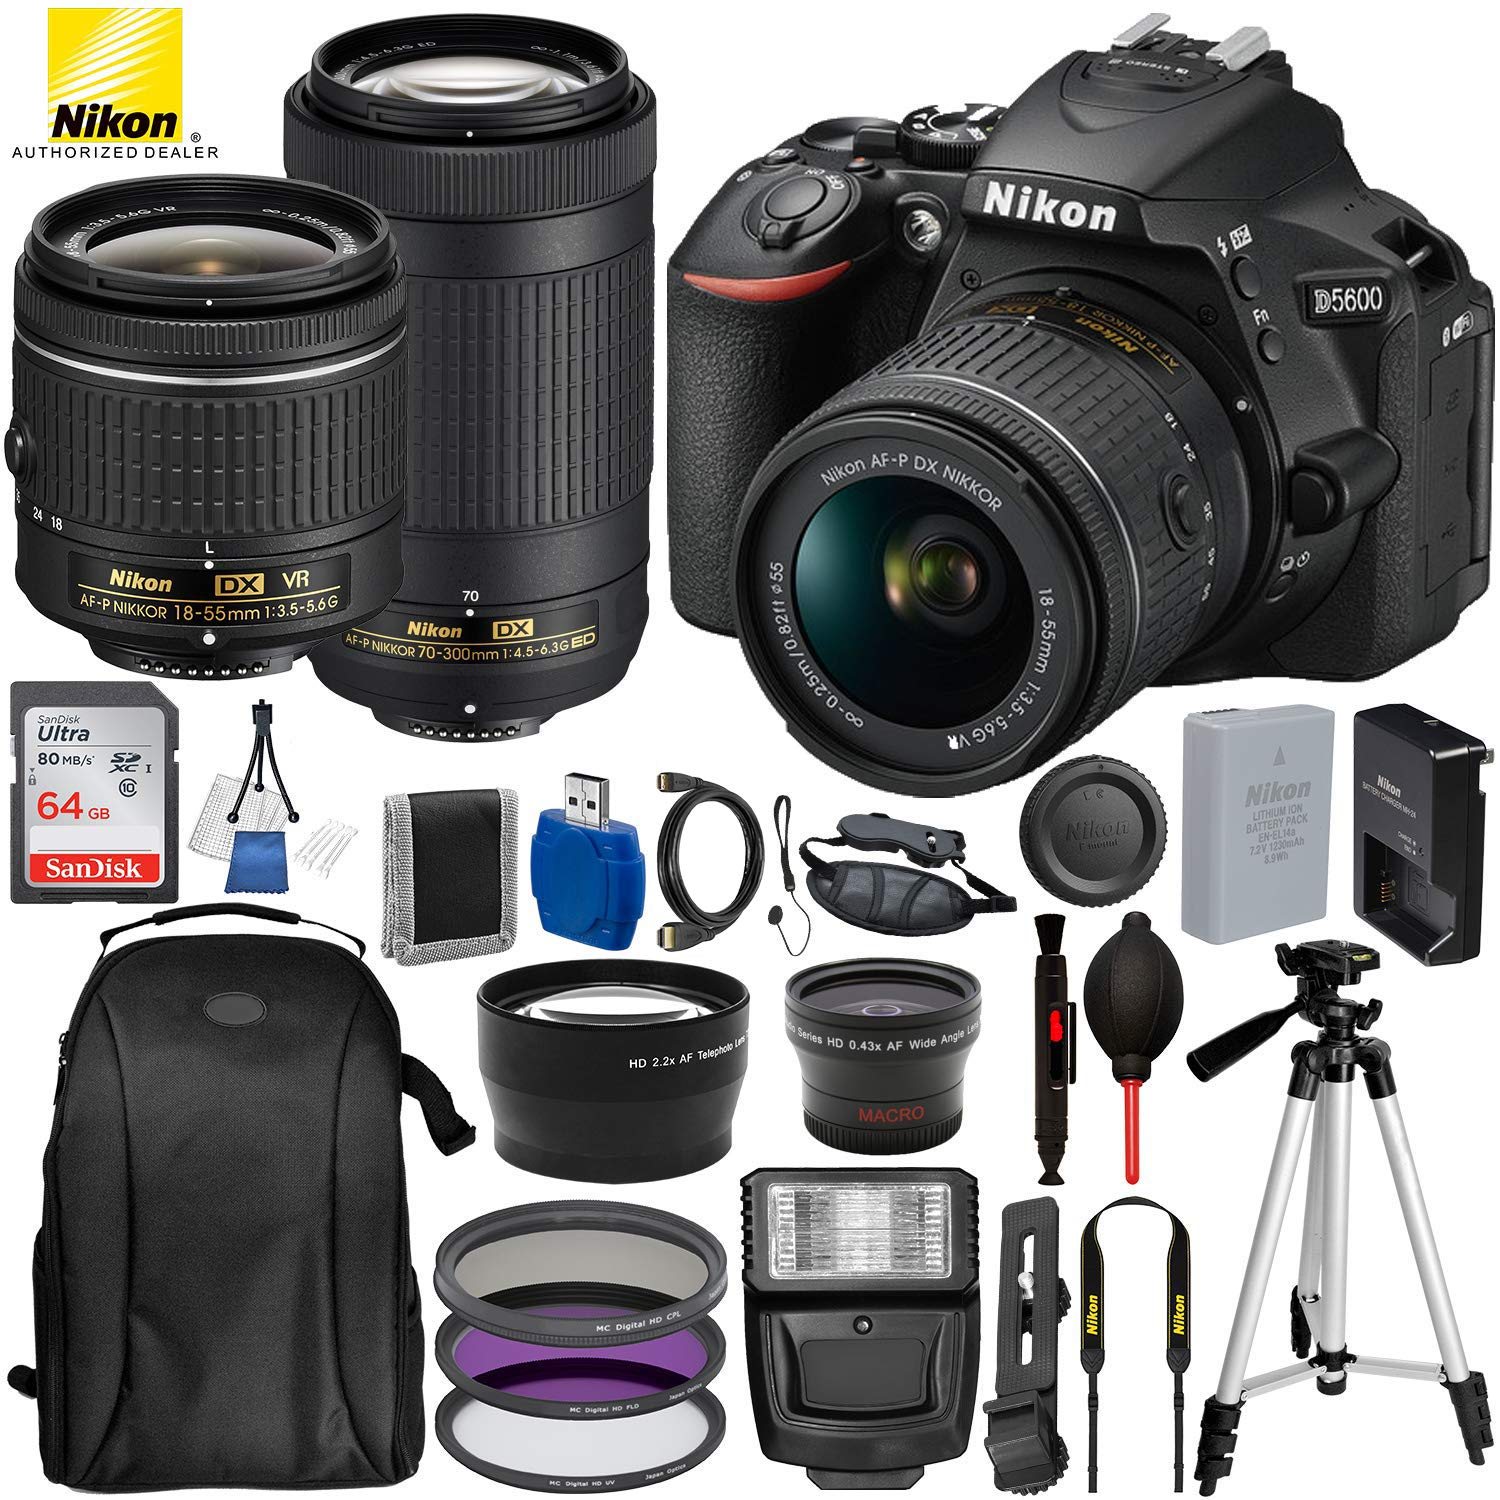 "Nikon D5600 DSLR Camera with 18-55mm and 70-300mm Lenses and 15PC Accessory Bundle – Includes SanDisk Ultra 64GB SDHC Memory Card + Digital Slave Flash + 3PC Filter Kit + 50"" Tripod and More"